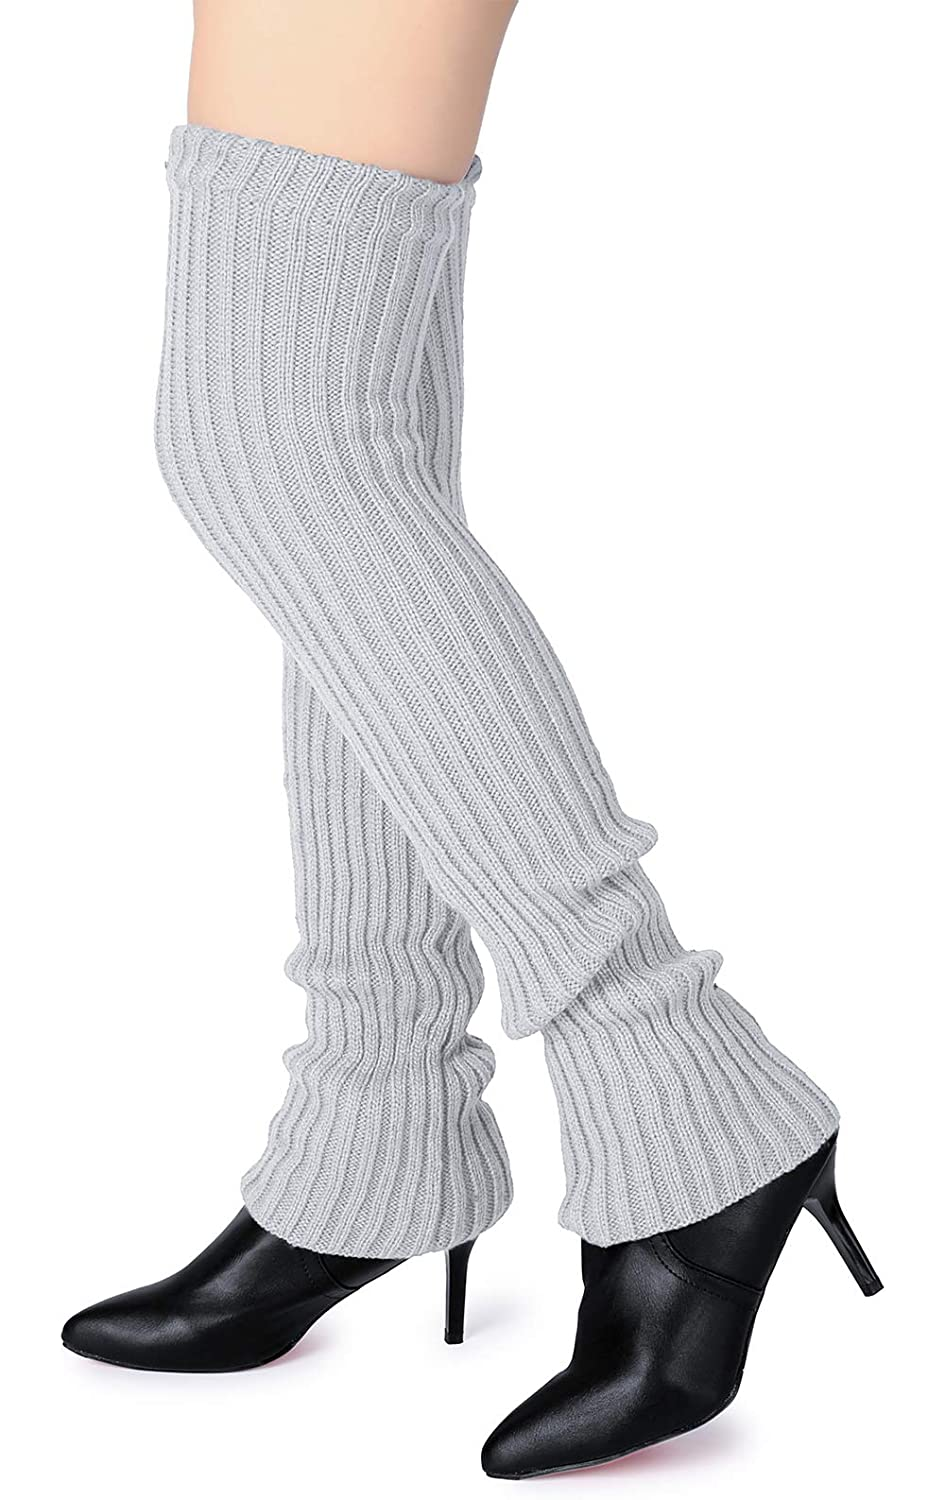 Pareberry Womens Winter Over Knee High Footless Socks Knit Warm Long Leg Warmers